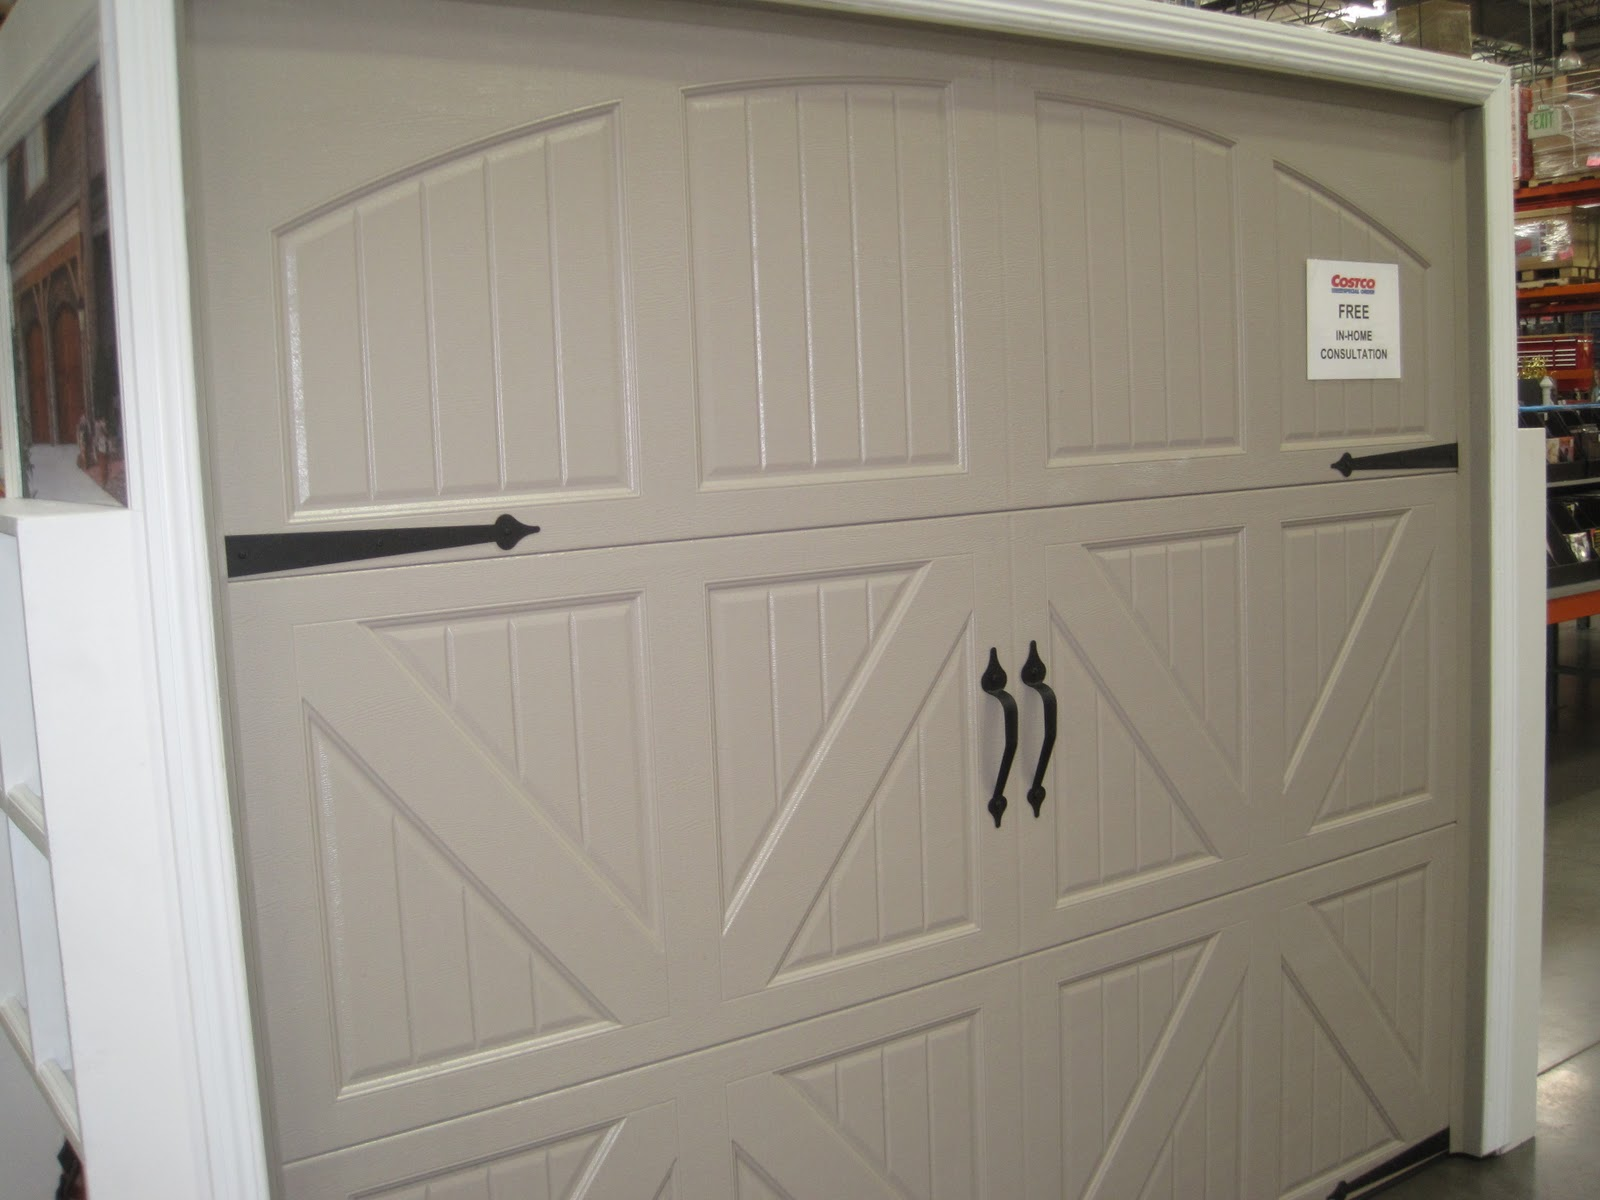 1200 #5F4938 Garage Doors Unlimited: Garage Door Road Show At Costco! pic Costco Doors 47611600